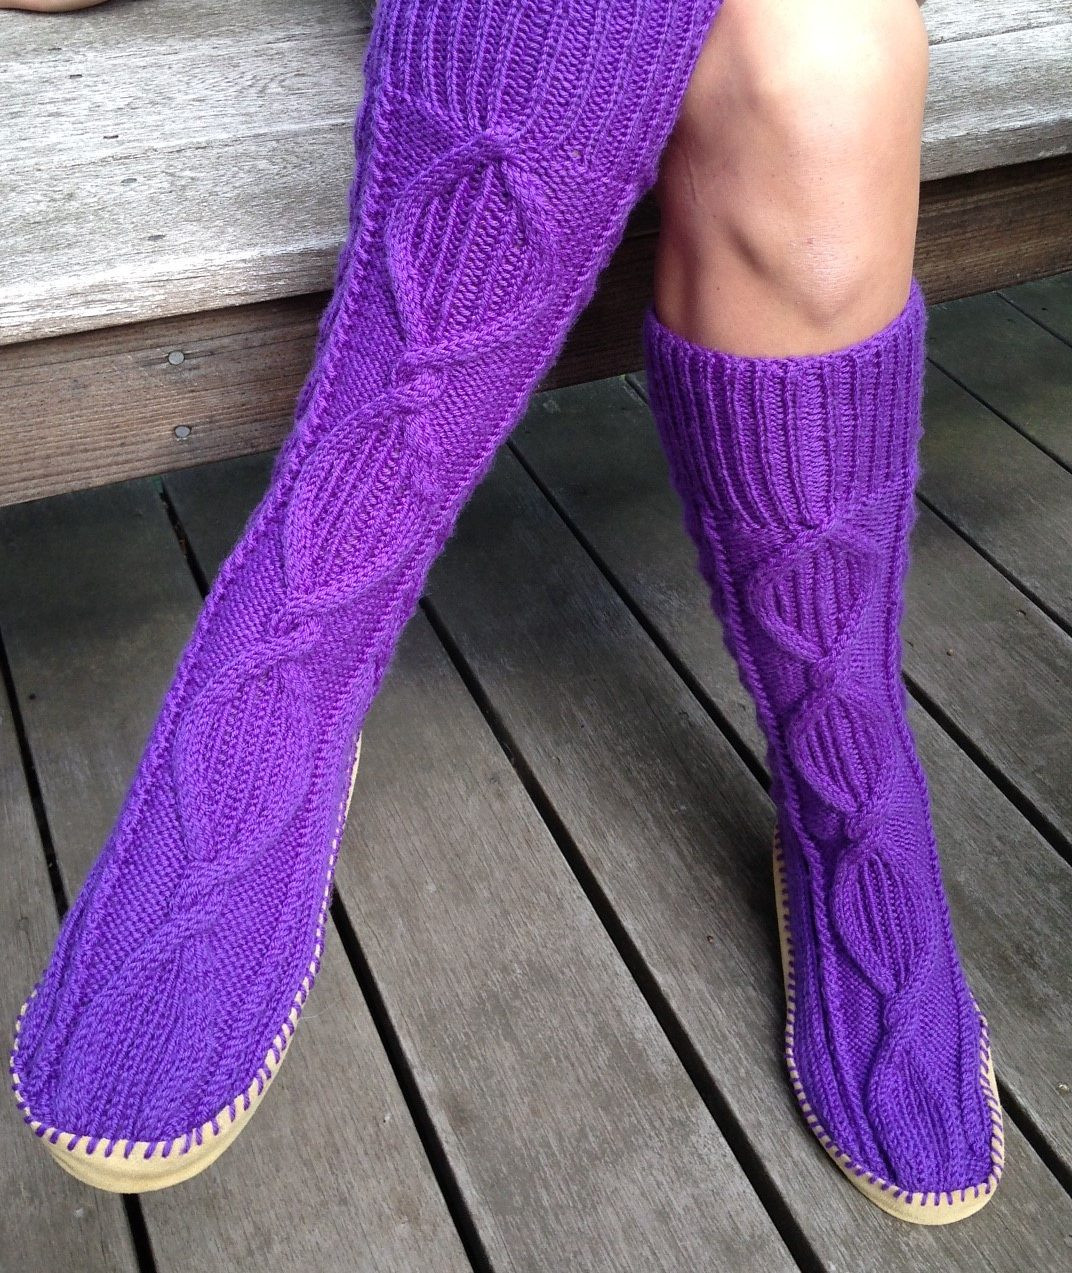 Unique Slipper socks and Boots Knitting Patterns Knitting Design Of Incredible 42 Images Knitting Design